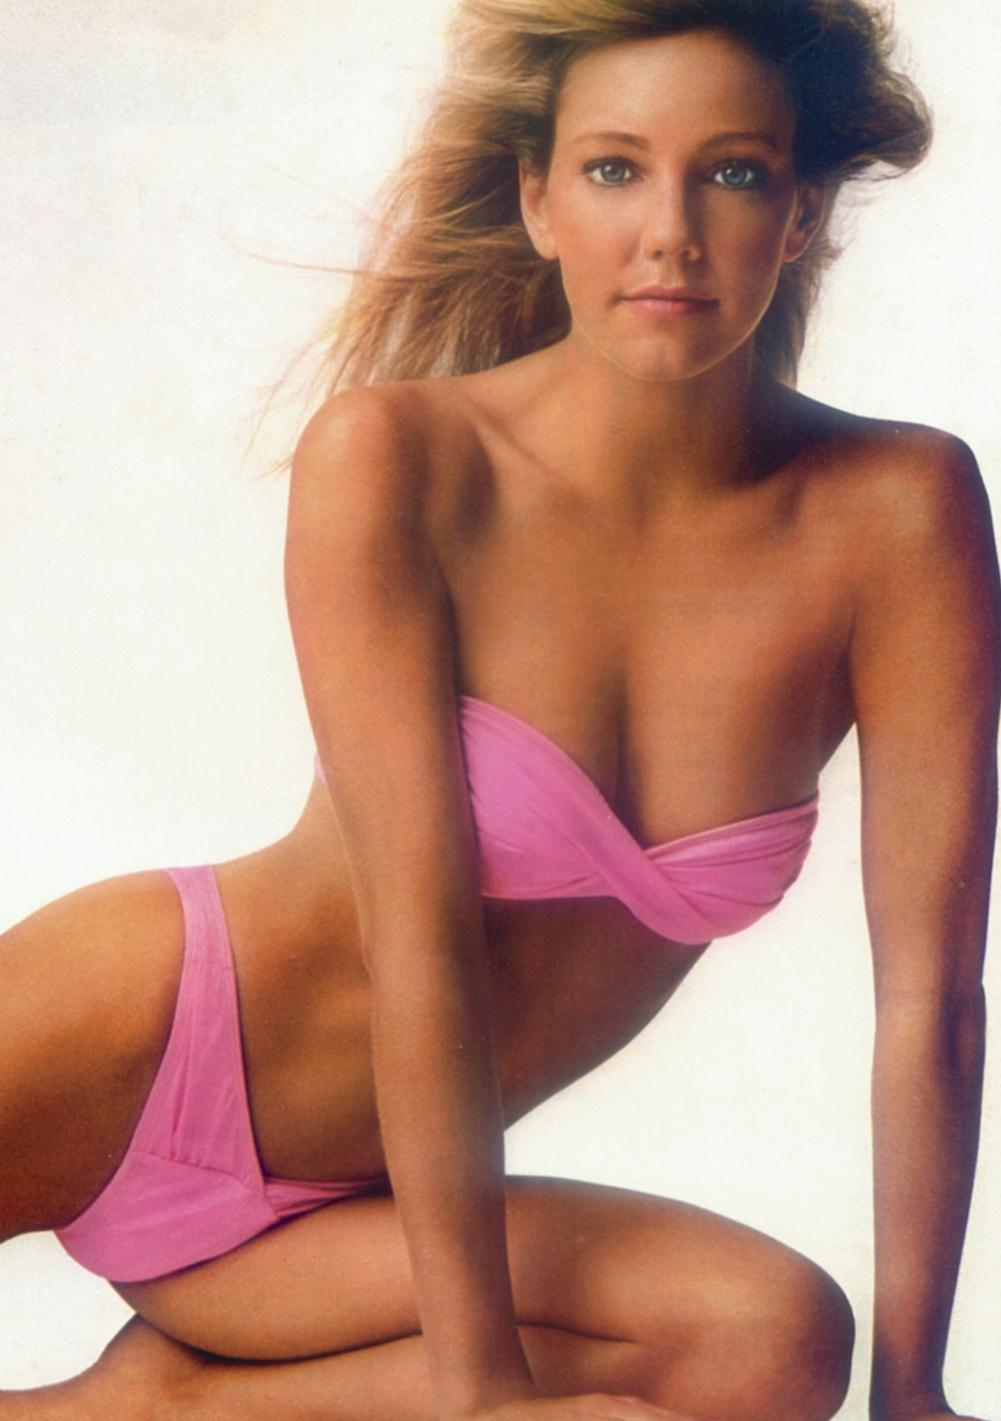 heather-locklear-1980s